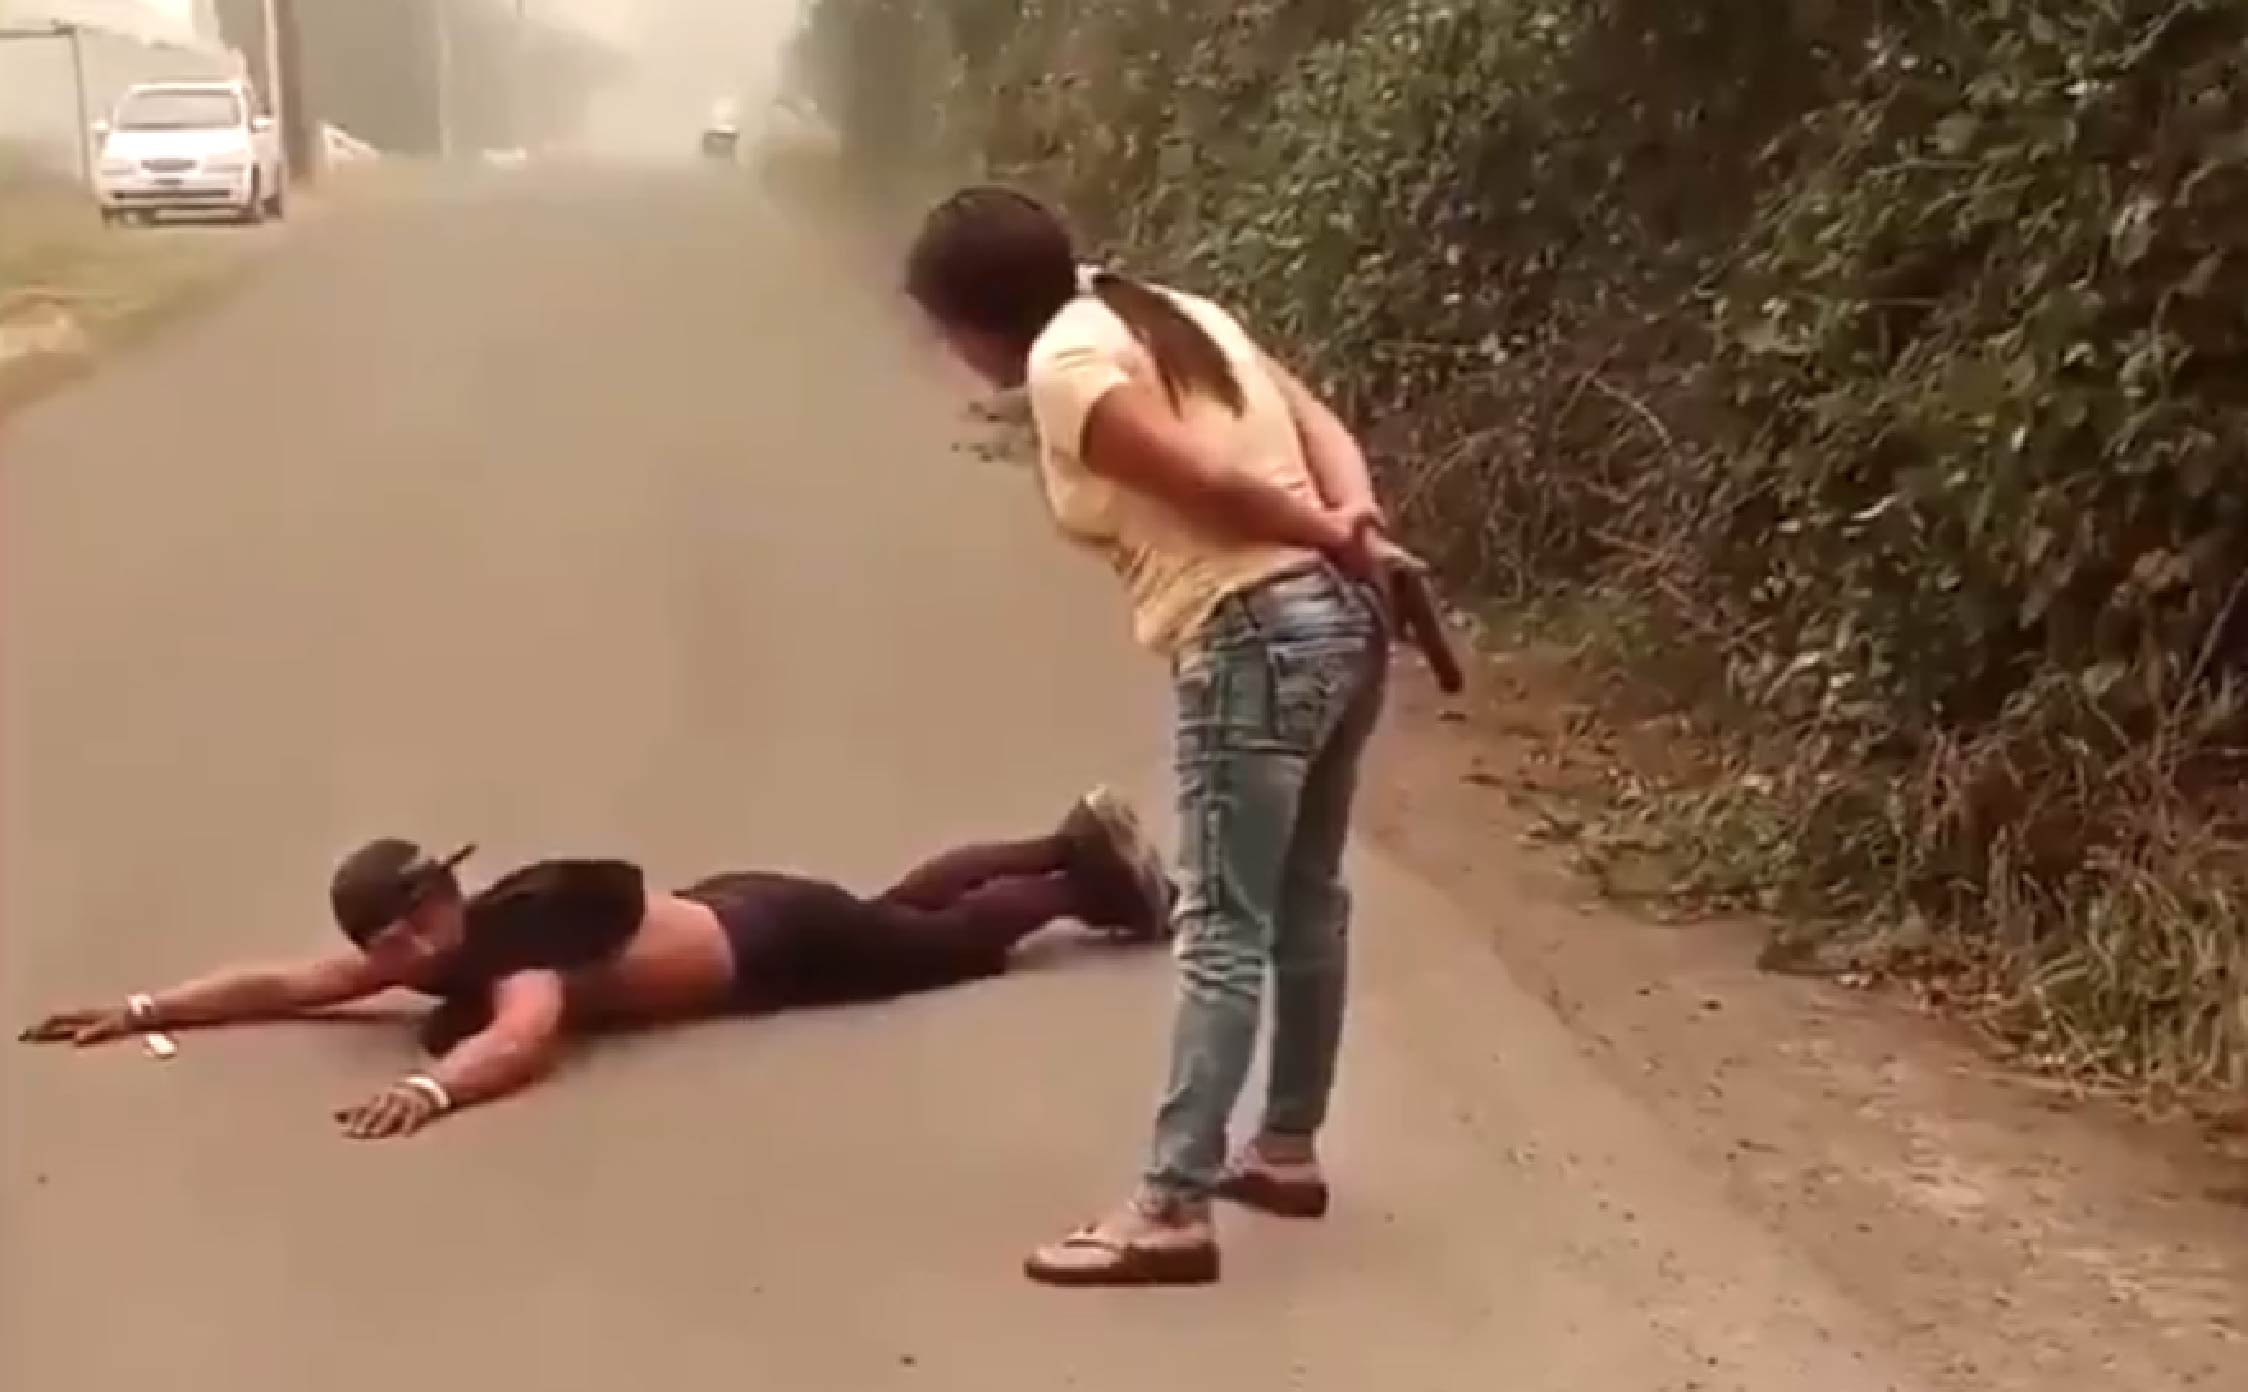 [VIDEO] Brave Woman Stops Her Car And Conducts a Citizen Arrest of Suspected Arsonist in Oregon